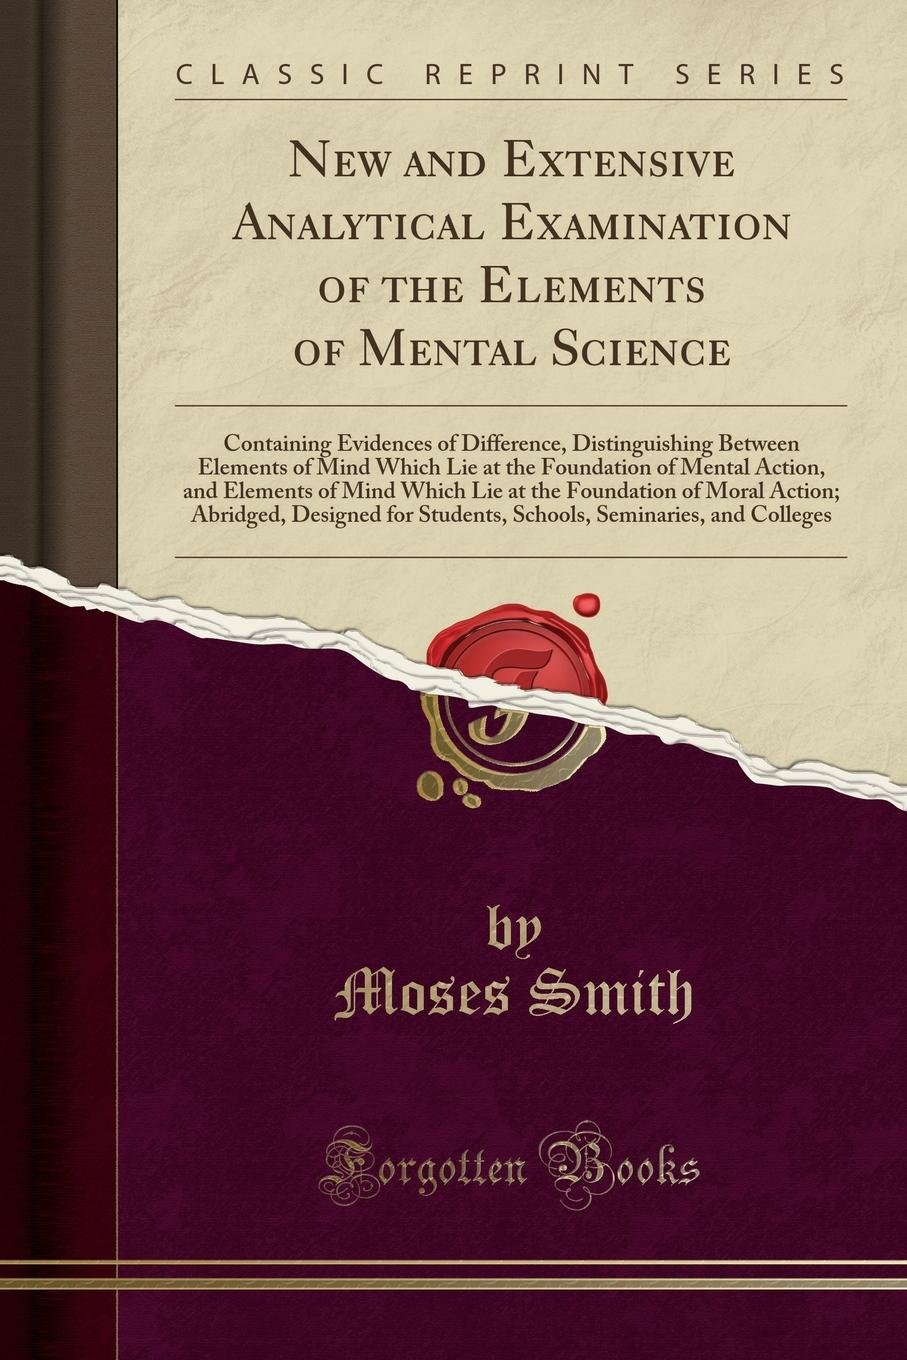 Download New and Extensive Analytical Examination of the Elements of Mental Science: Containing Evidences of Difference, Distinguishing Between Elements of ... of Mind Which Lie at the Foundation of Moral ebook